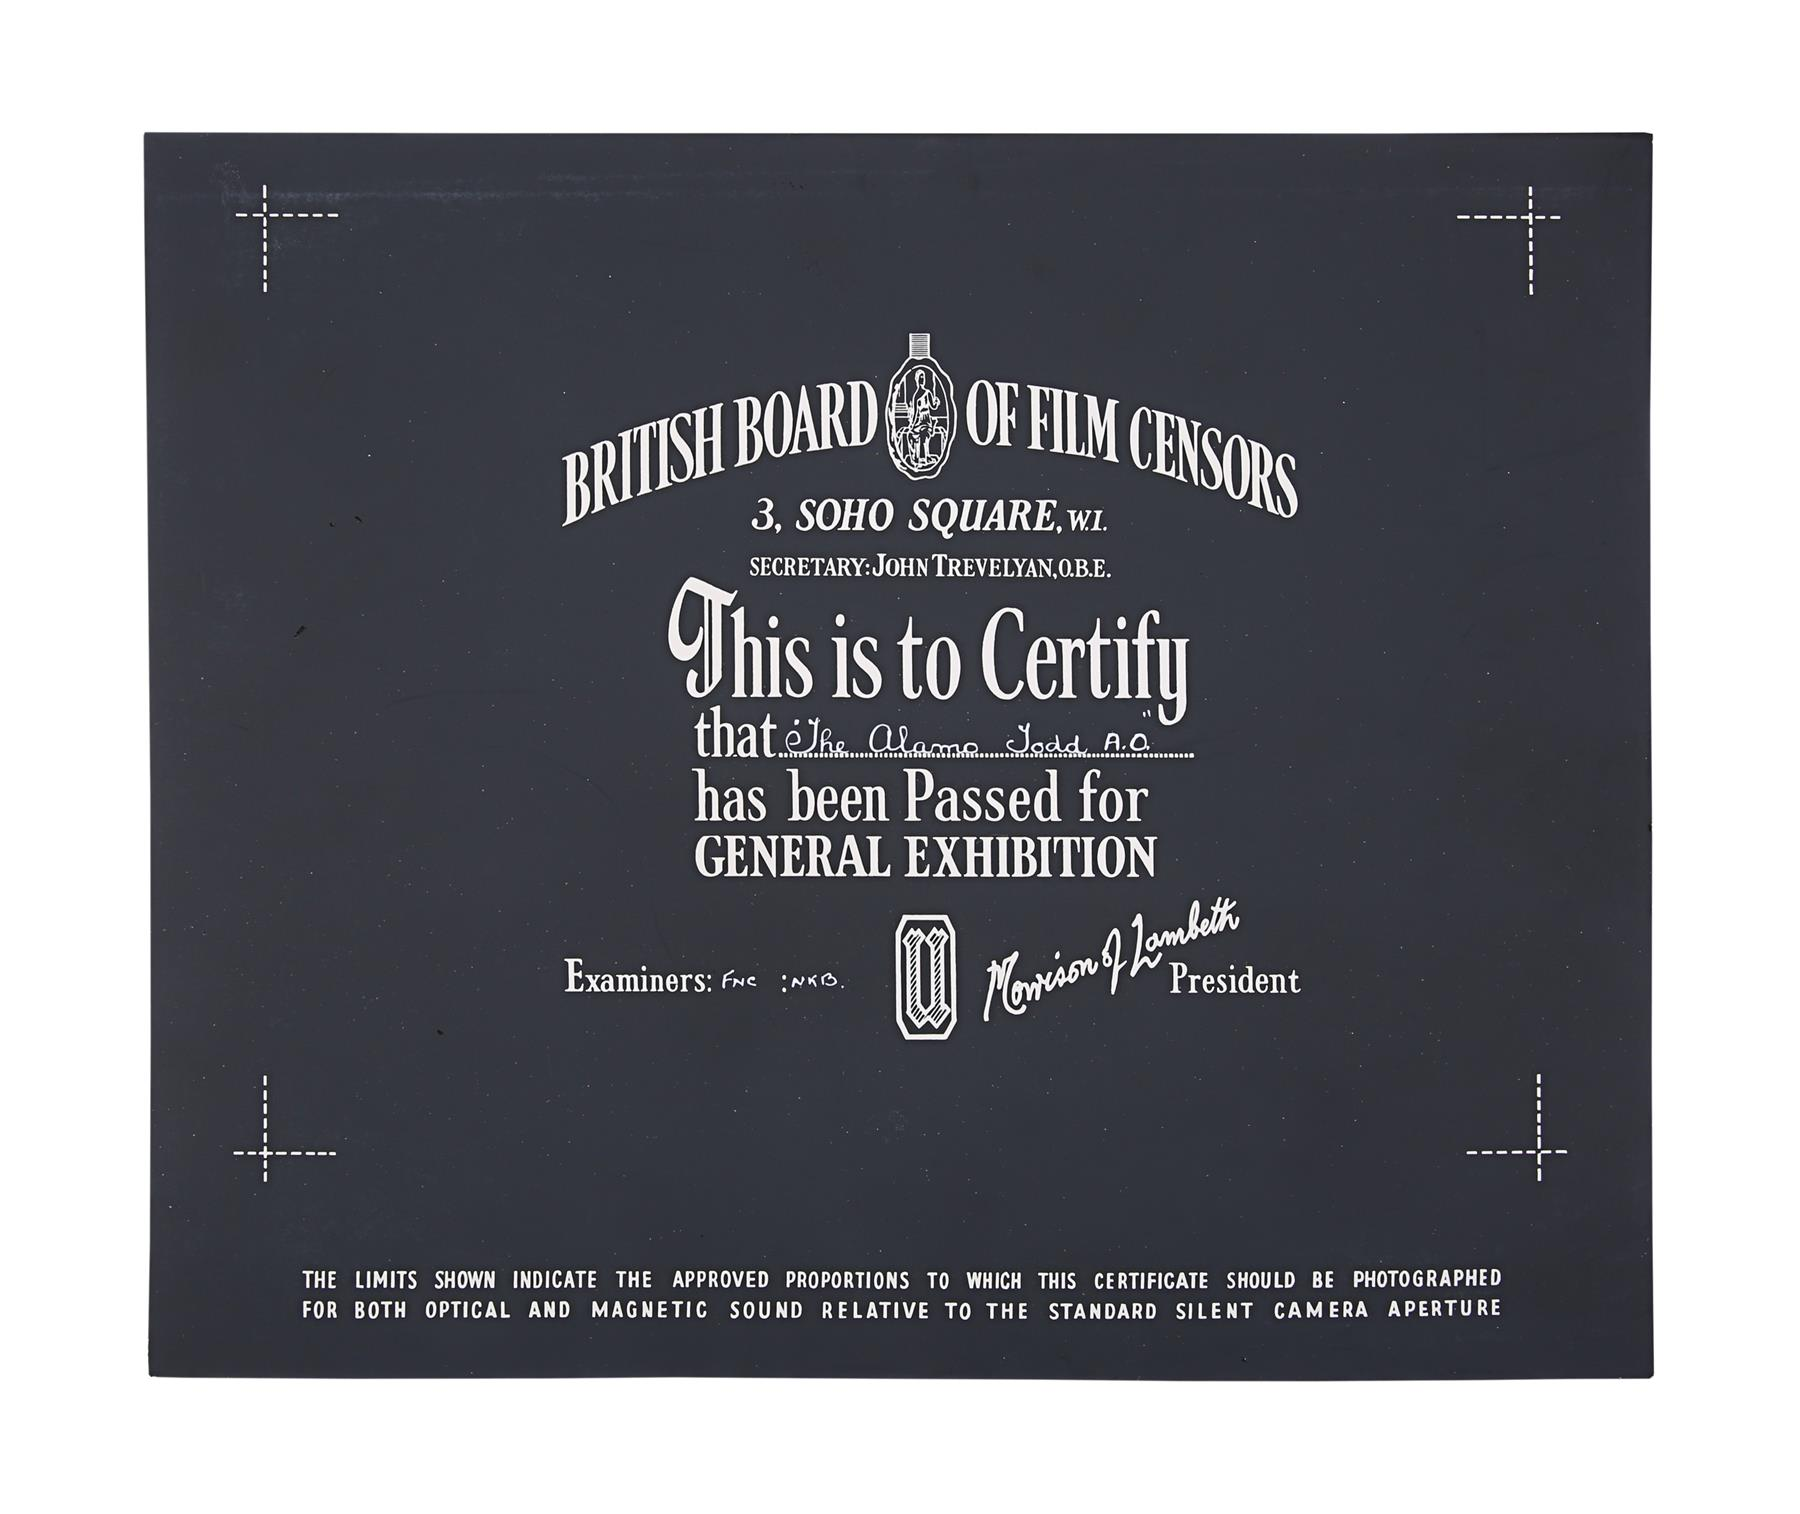 VARIOUS WESTERN PRODUCTIONS - BBFC Certificates - Image 3 of 5